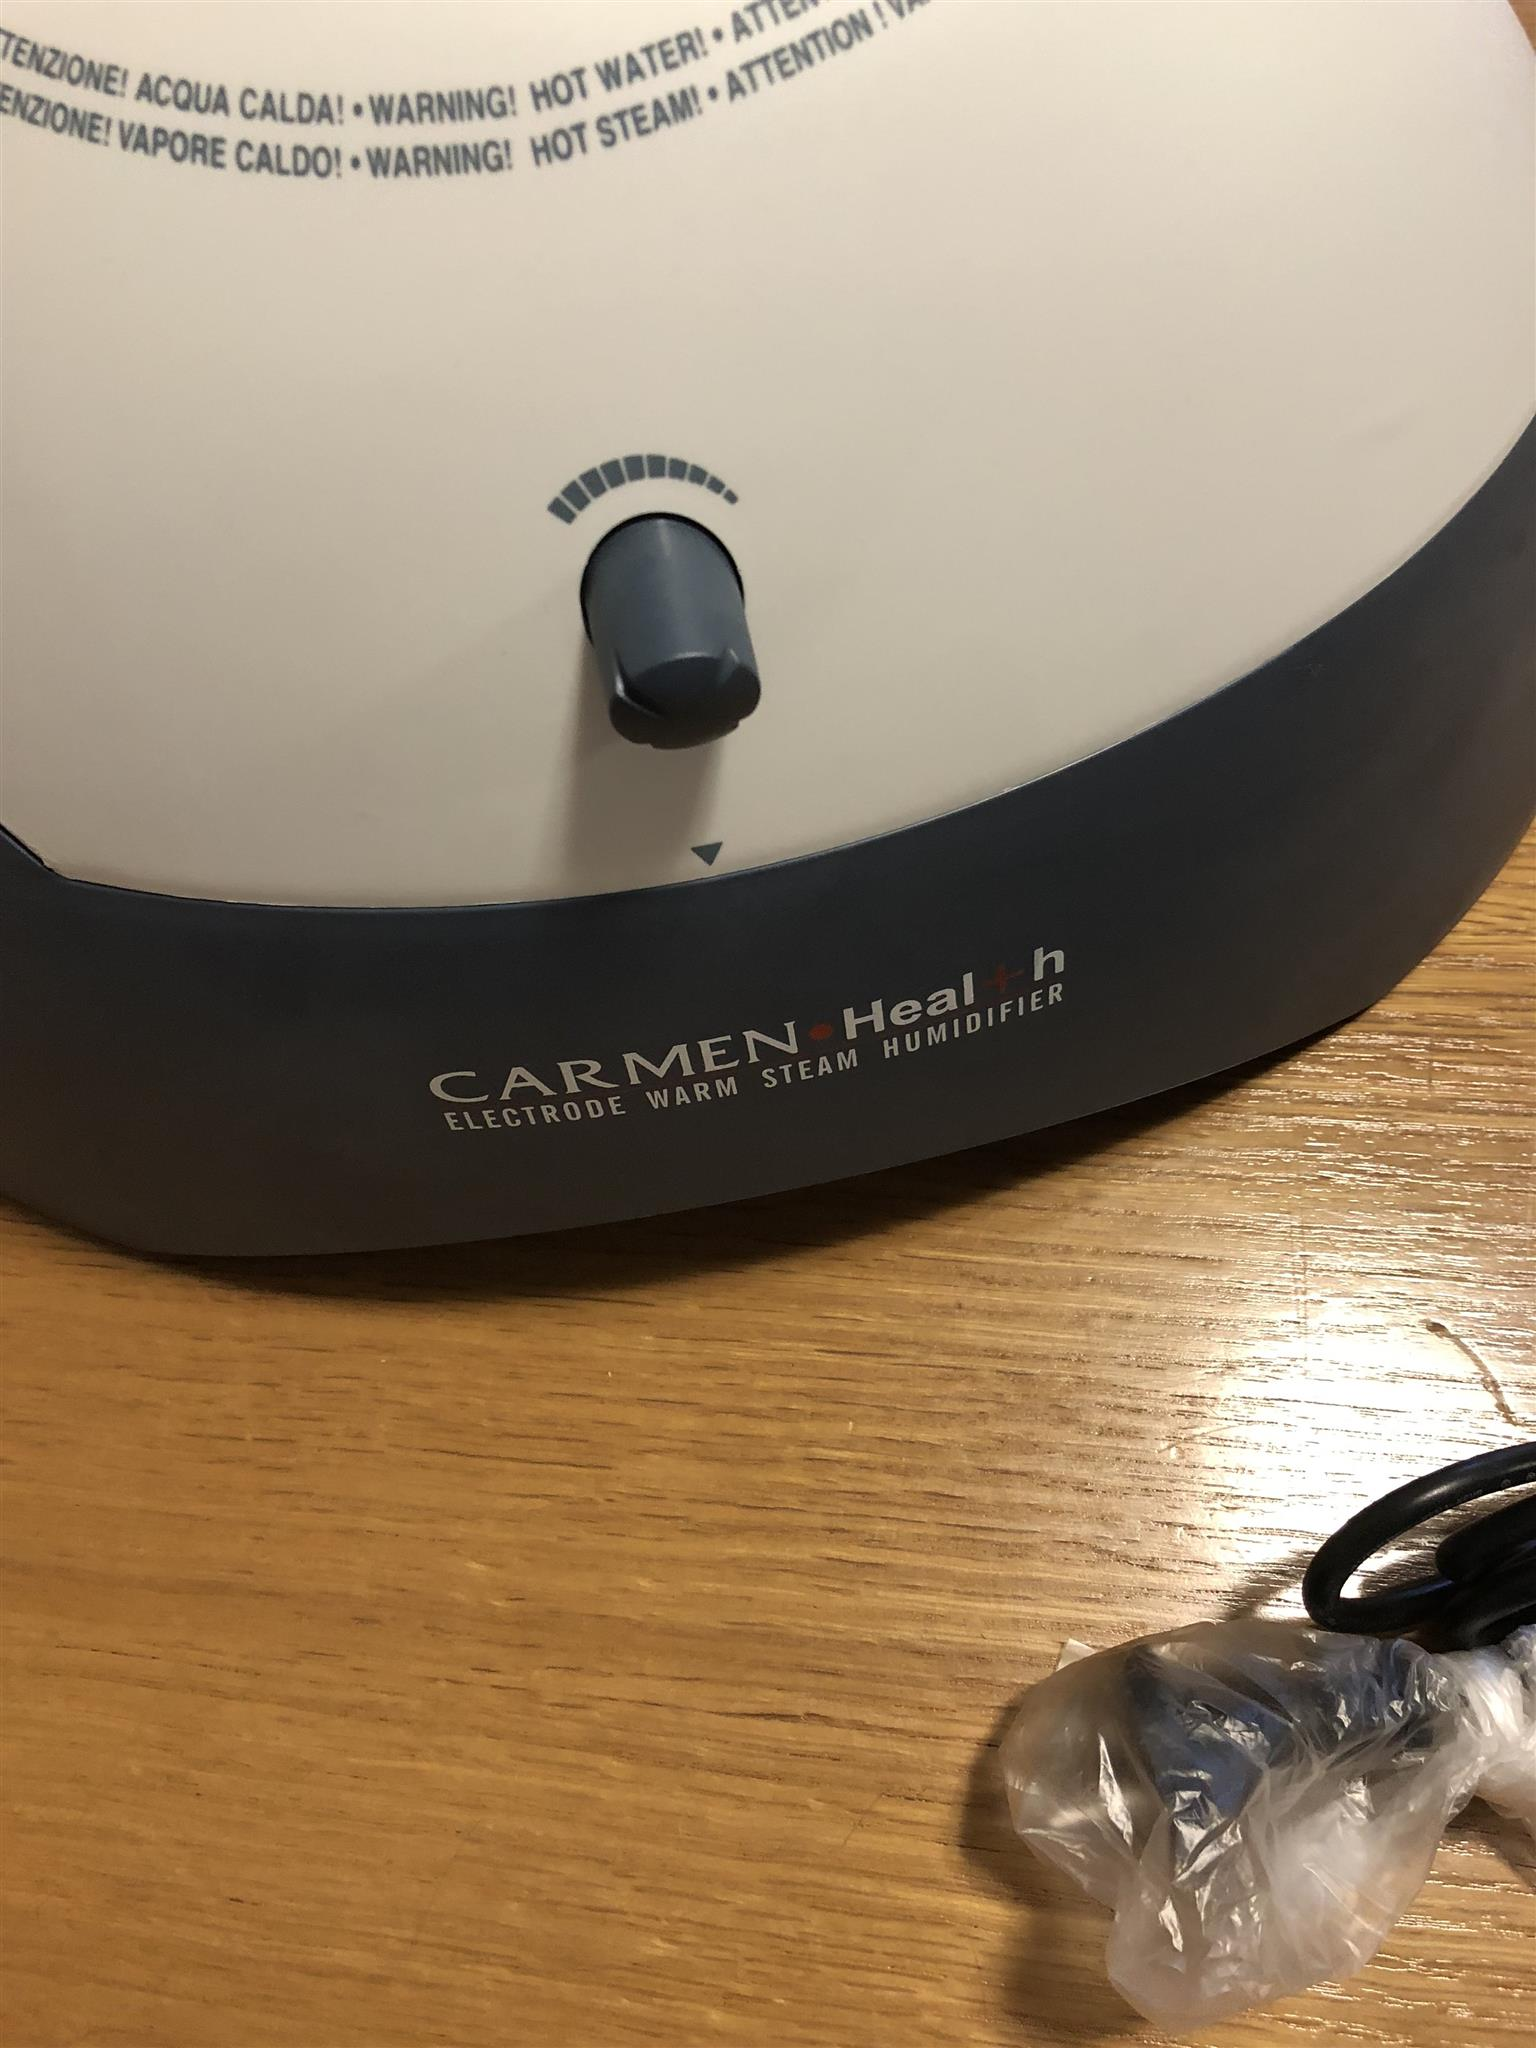 Electrode warm steam humidifier